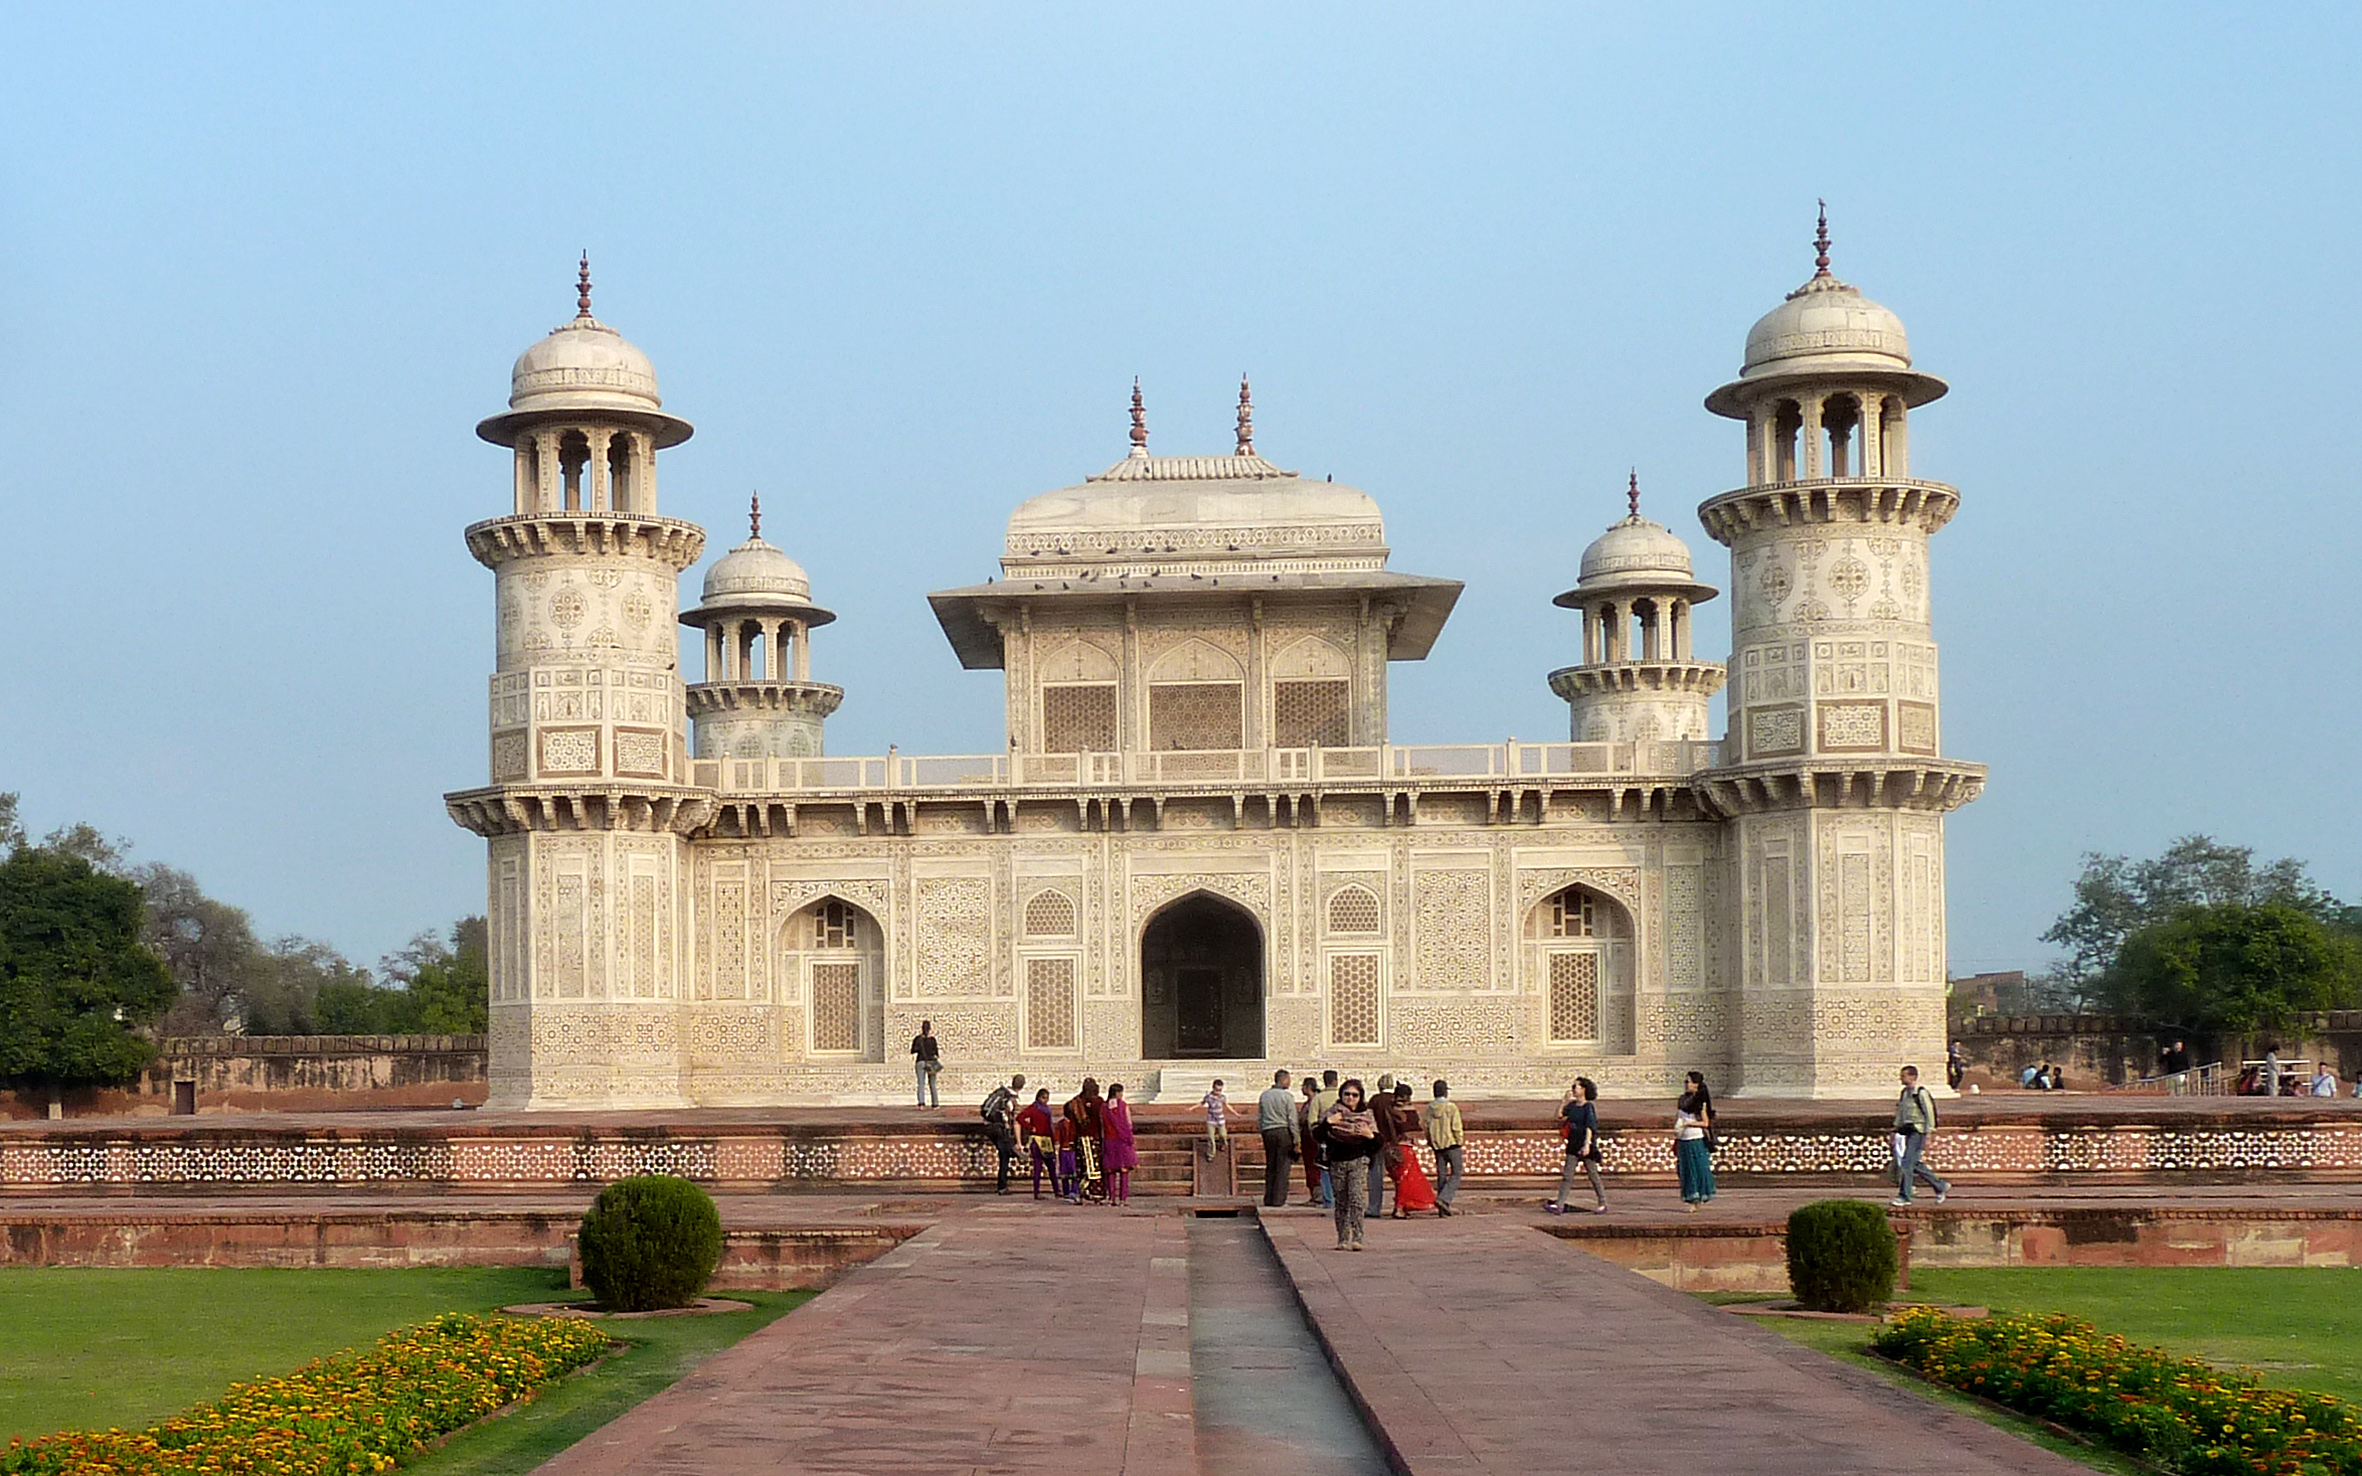 Agra: the Itimad-ud-Daulah, known as the Baby Taj